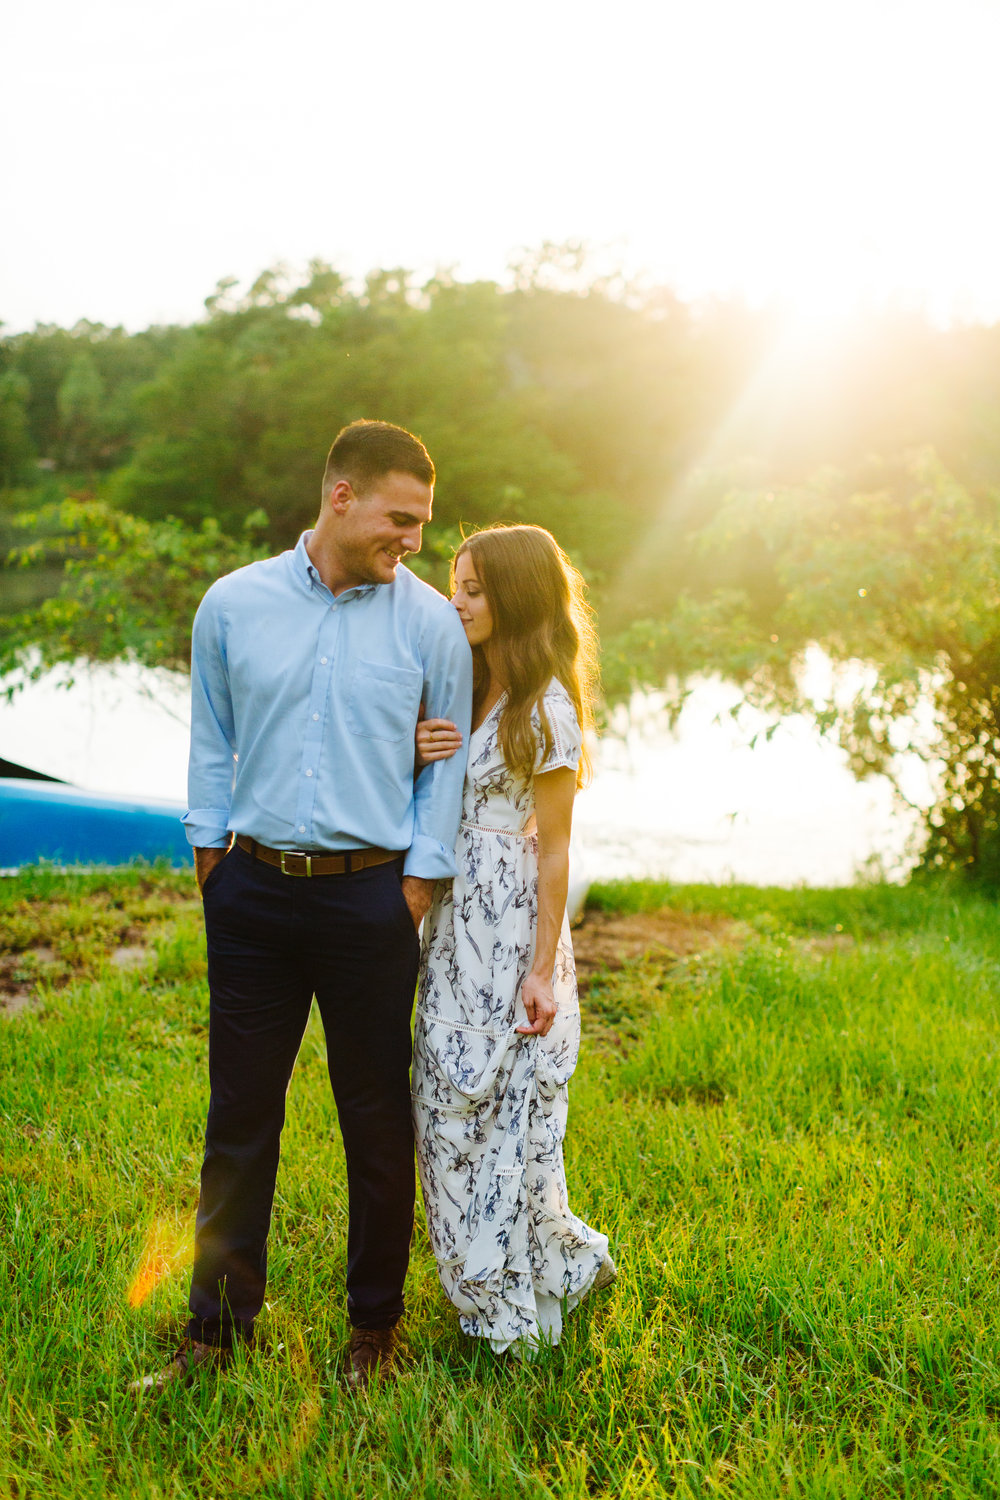 Daniel & Rebecca - Engagement - Jake & Katie Photography-103.jpg